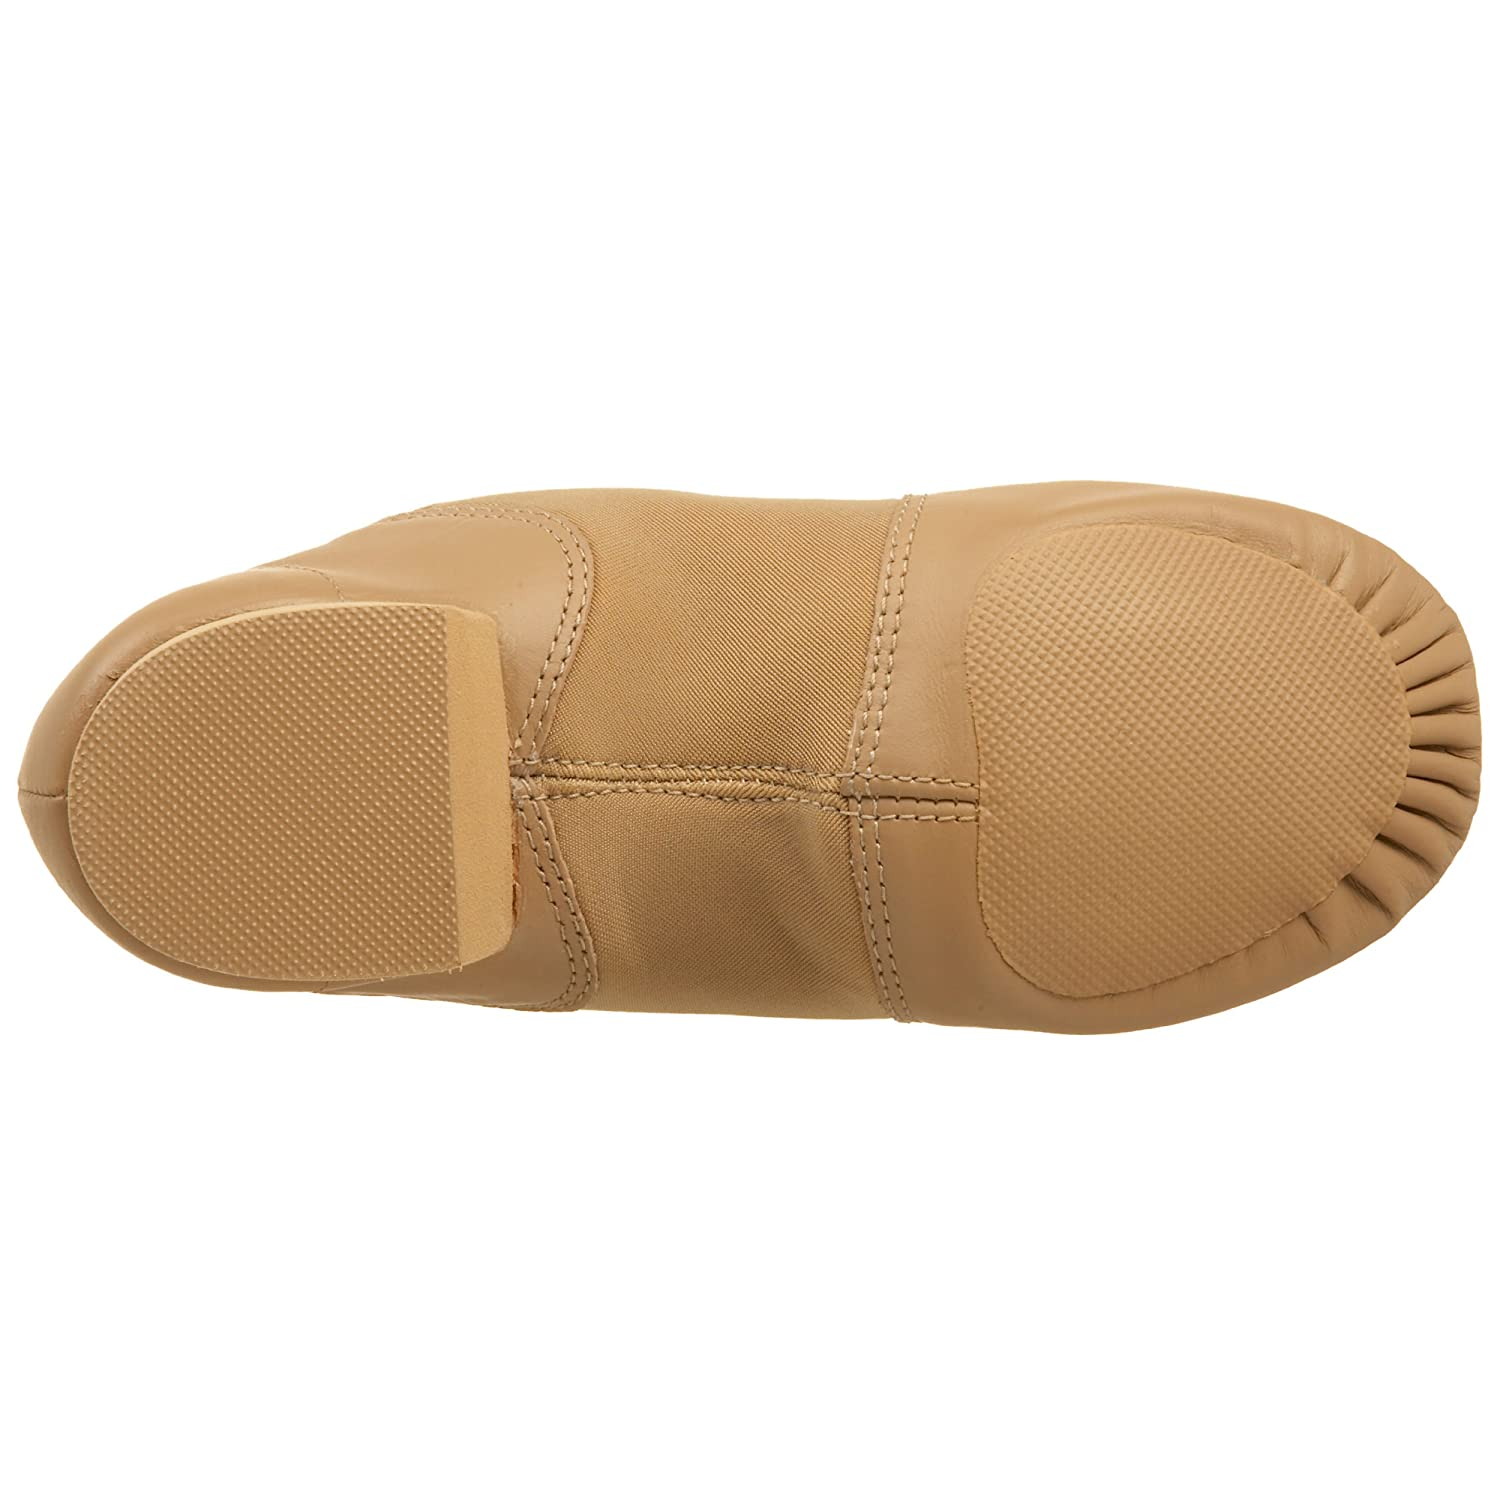 Capezio Women's 9.5 EJ2 E-Series Jazz Slip-On B001A7PG88 9.5 Women's  W US|Caramel 5d2ef6